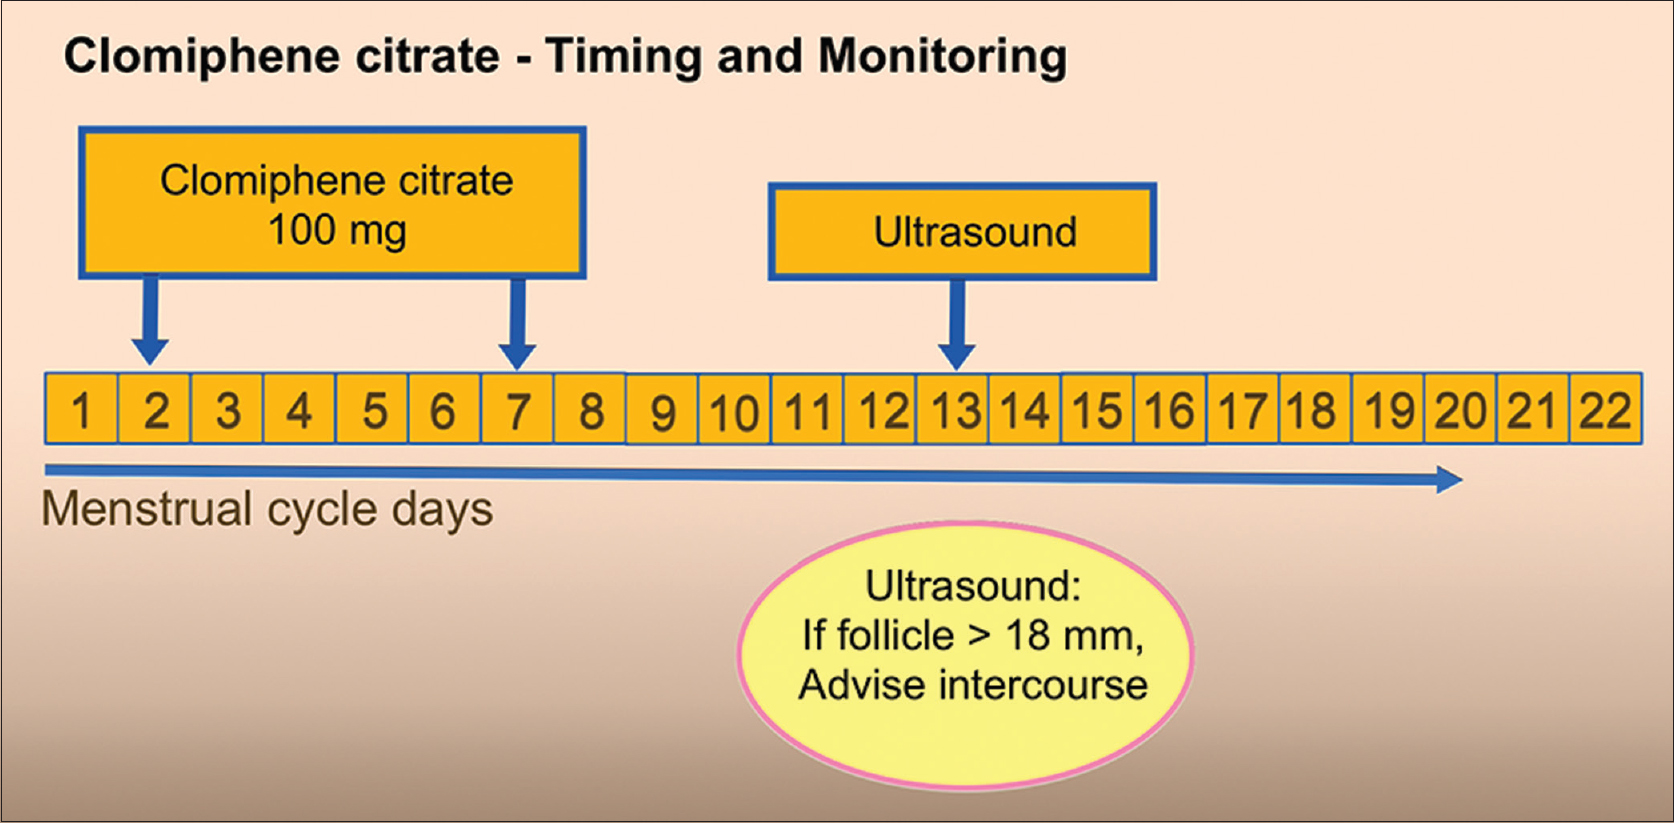 Figure 3: Timing and monitoring of clomiphene citrate